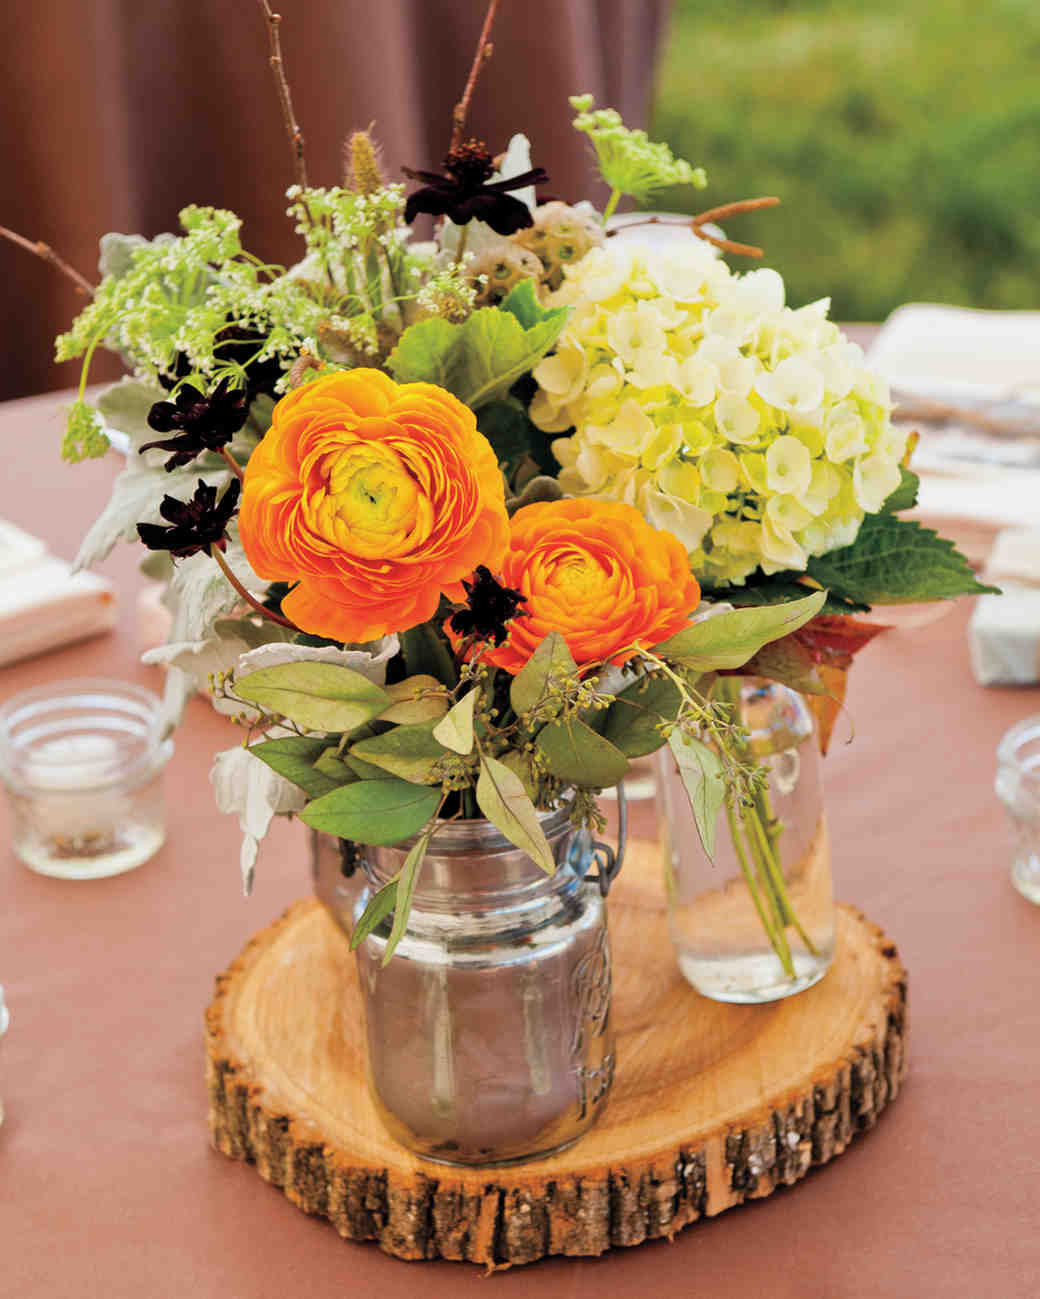 Ideas For Wedding Flower Arrangements: 51 Rustic Fall Wedding Centerpieces